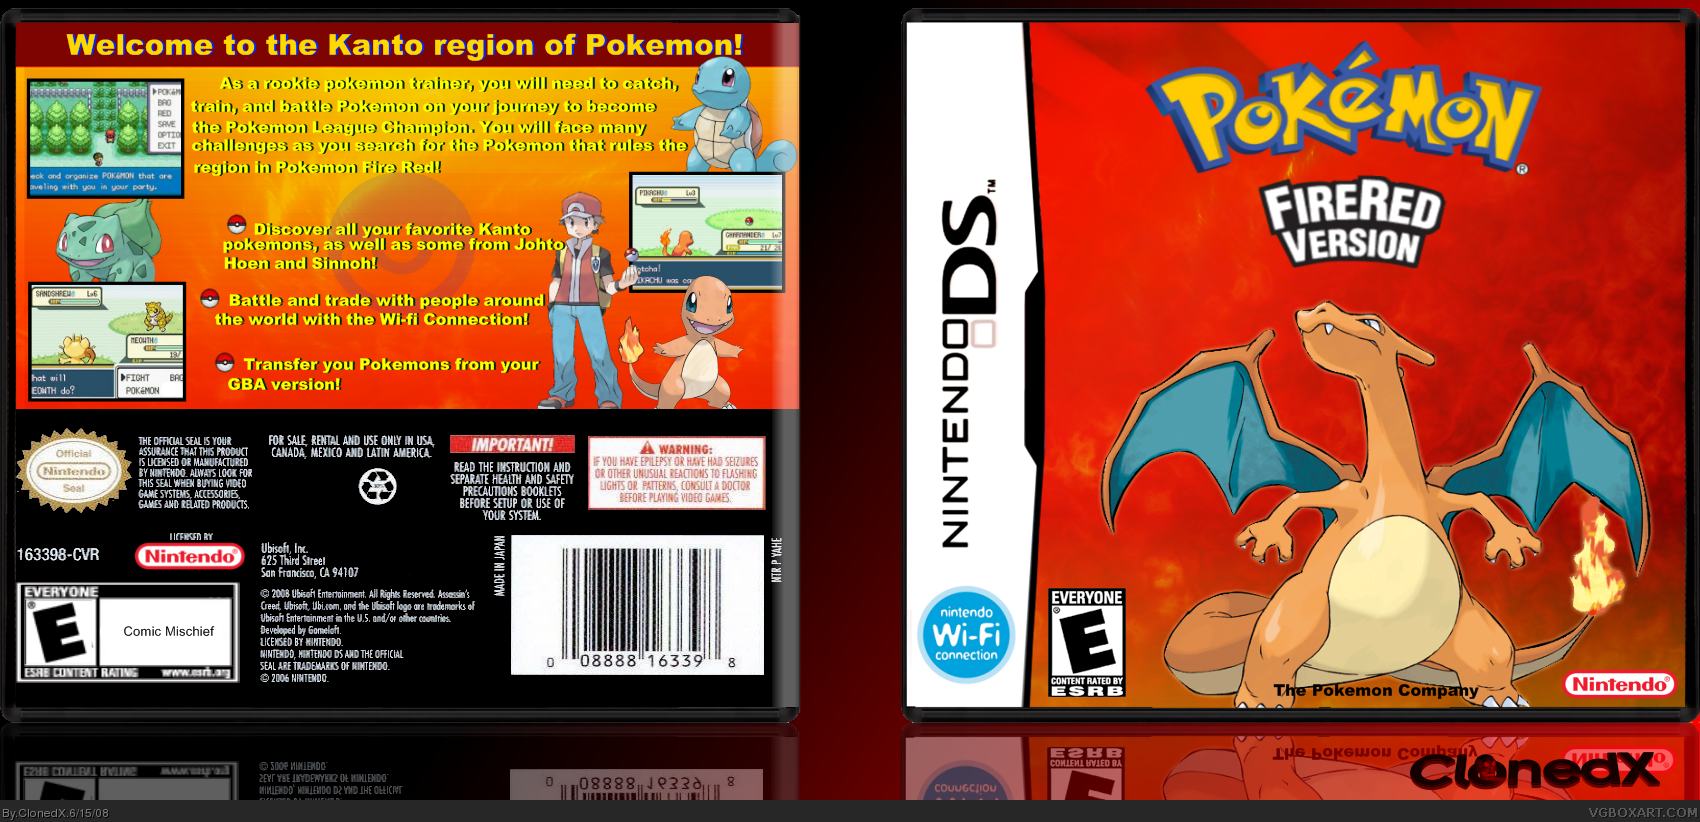 Pokemon firered rojofuego gba rom pokemon firered version and pokemon